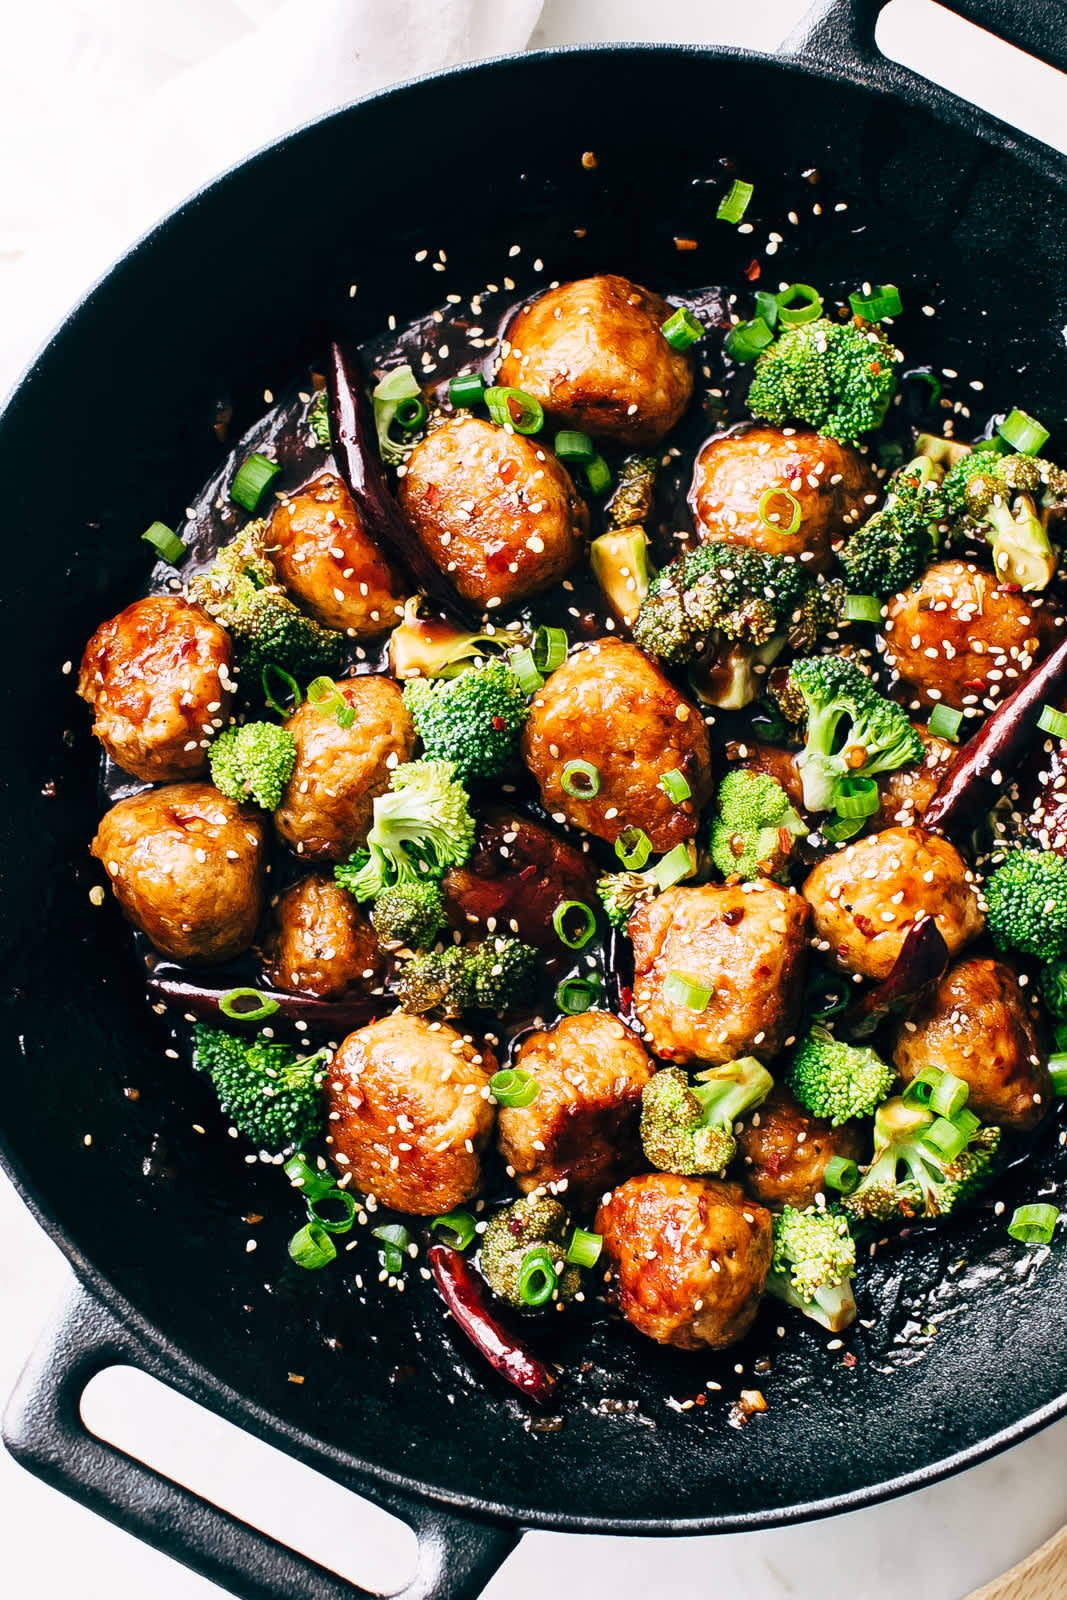 These General Tso's Chicken Meatballs Are Something to Look Forward to